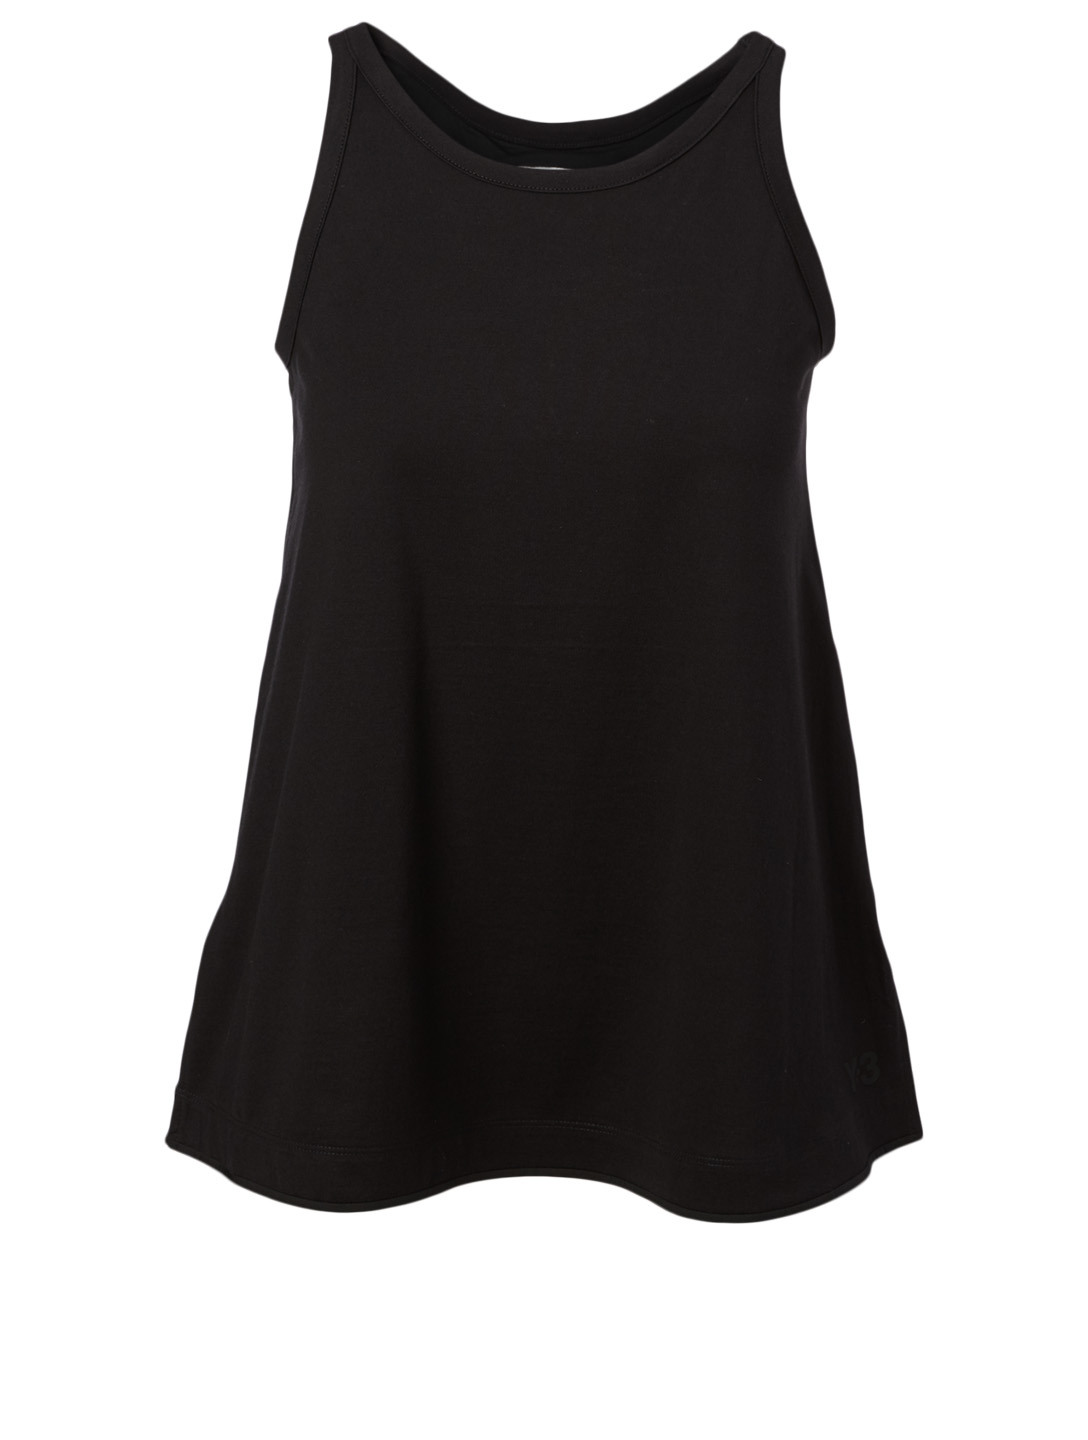 Y-3 Cotton Jersey Tank Top Women's Black